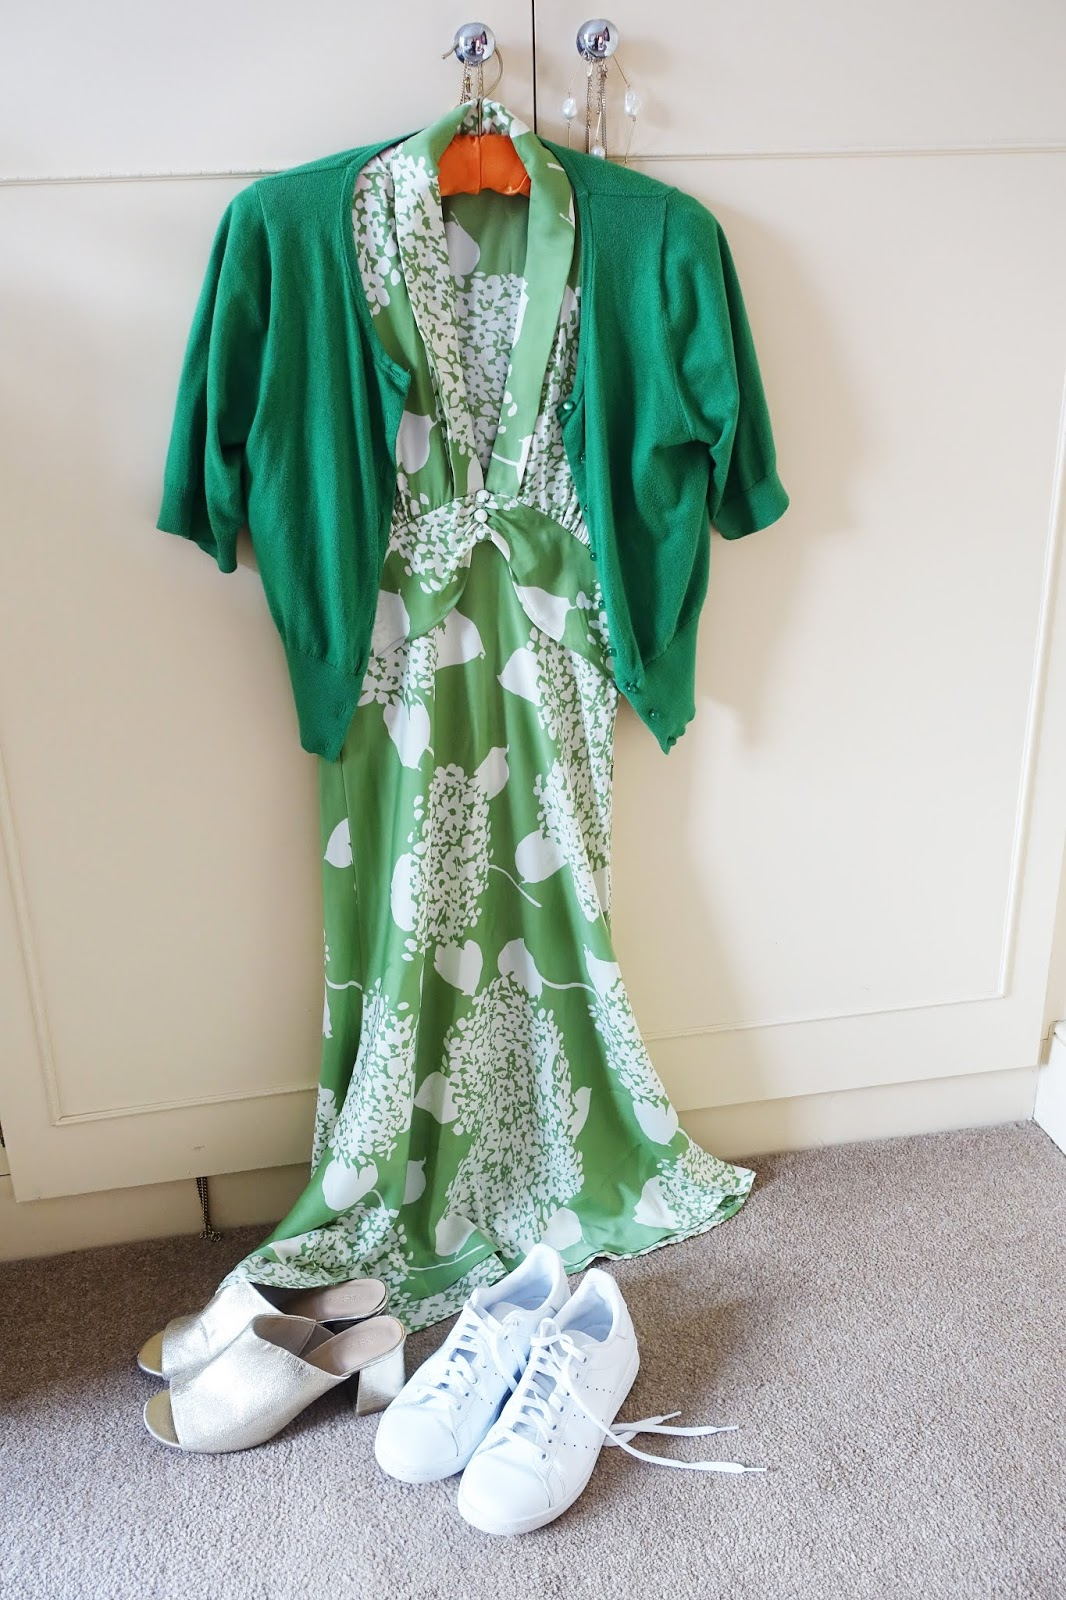 Hydrangea print dress from Nancy Mac styled with either mules or white trainers and a green cardigan by over-50s blog Is This Mutton?